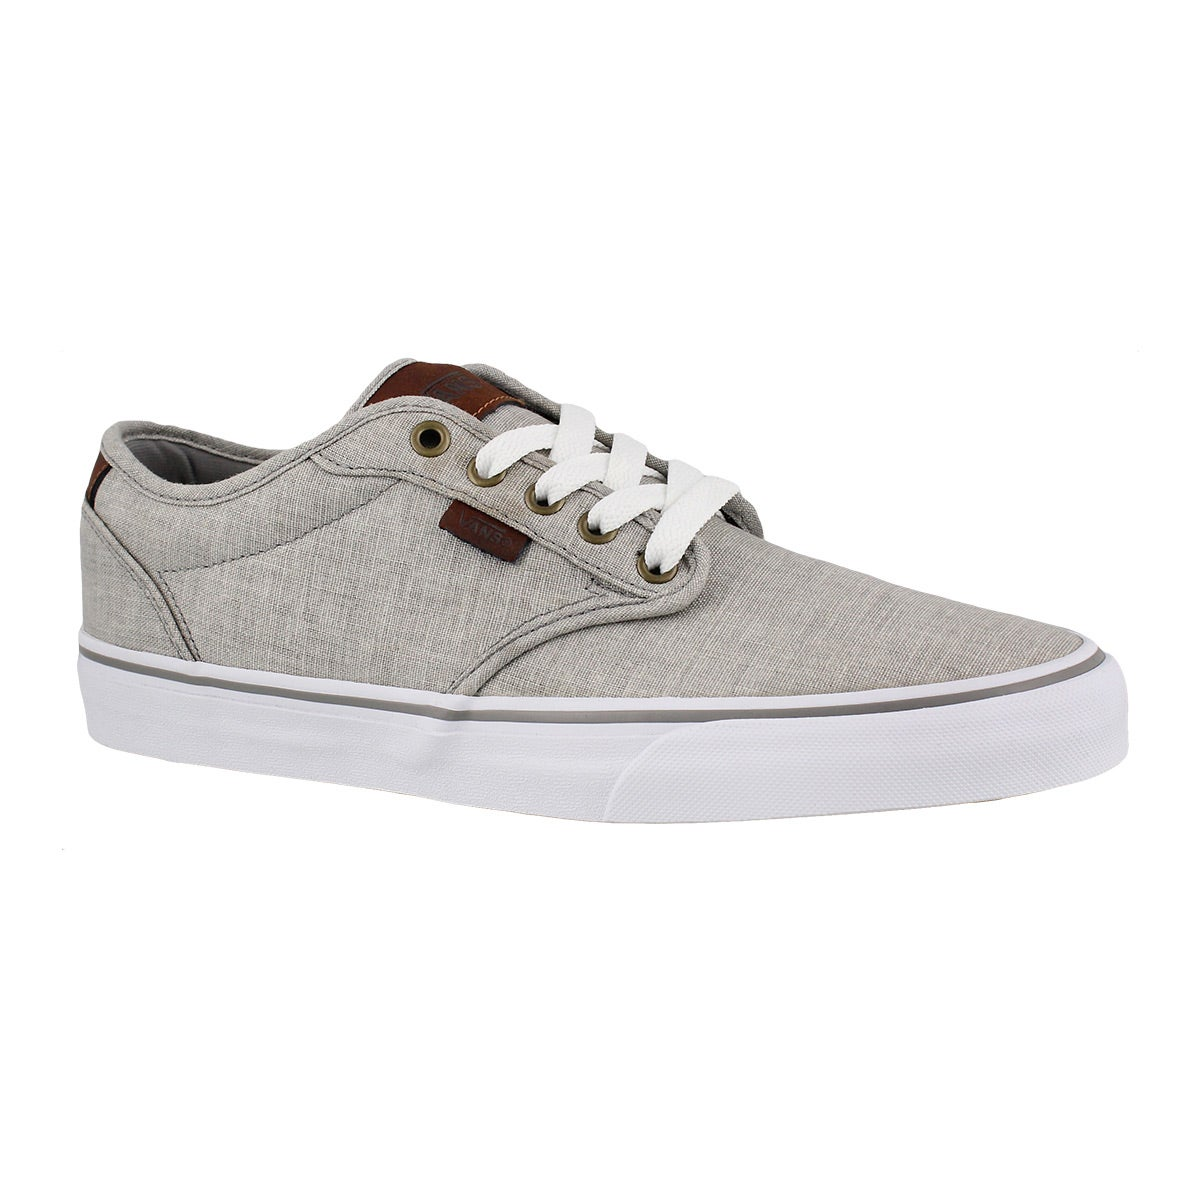 Men's ATWOOD DELUXE frost grey/white sneaker